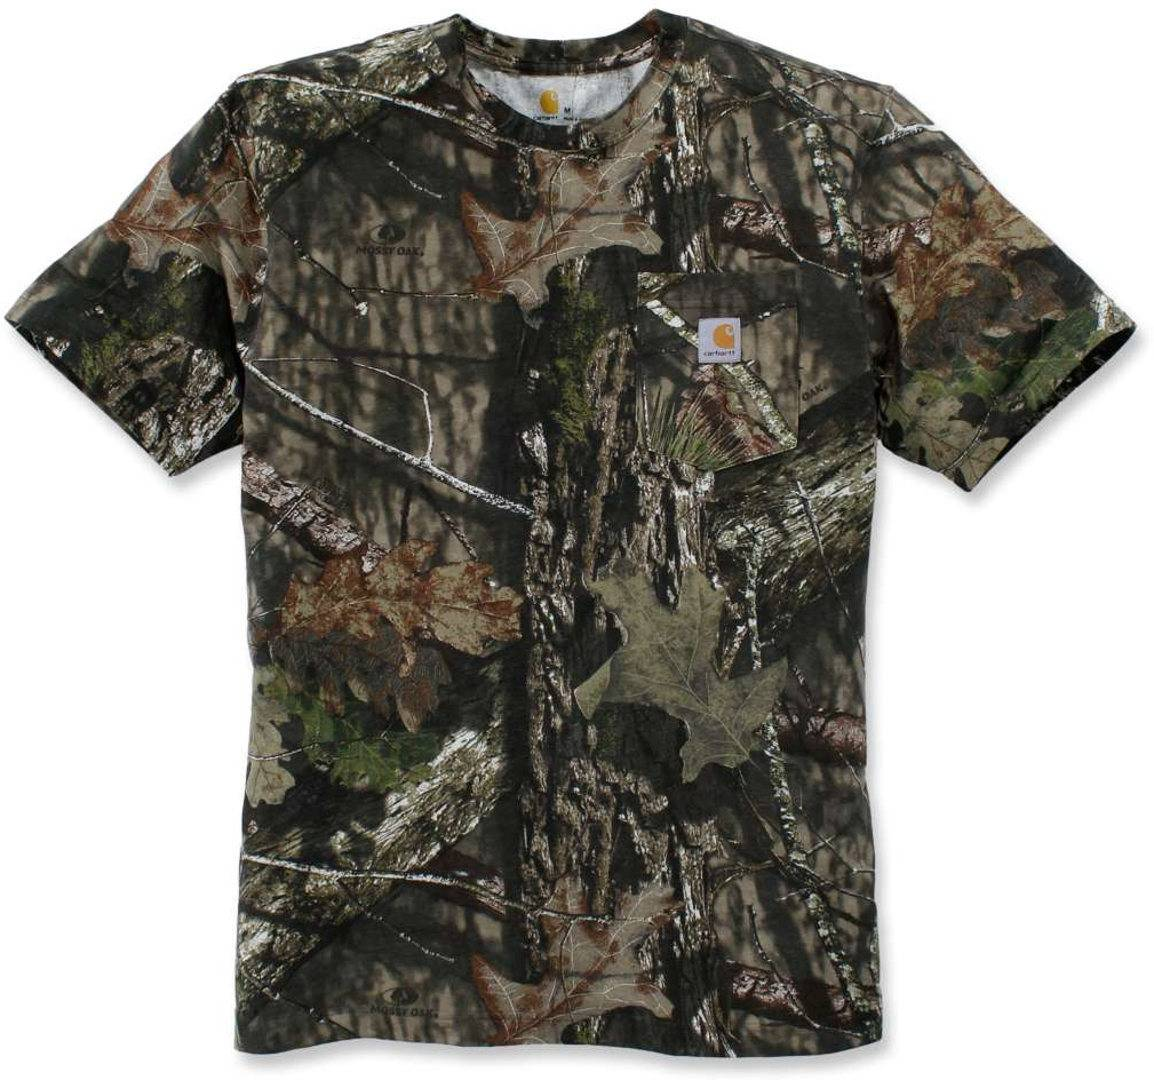 Carhartt Workwear T-Shirt Camo Multicolore S